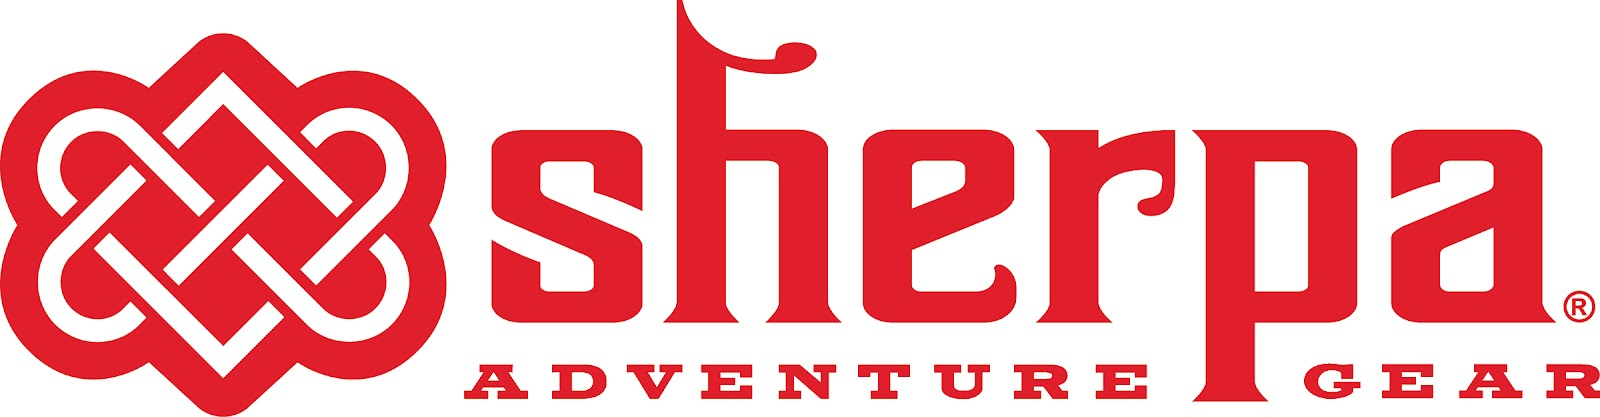 2a75fa0836a Today was my first official day as a member of the Sherpa Adventure Gear  Ambassador Team!! I visited the Sherpa Adventure Gear ...